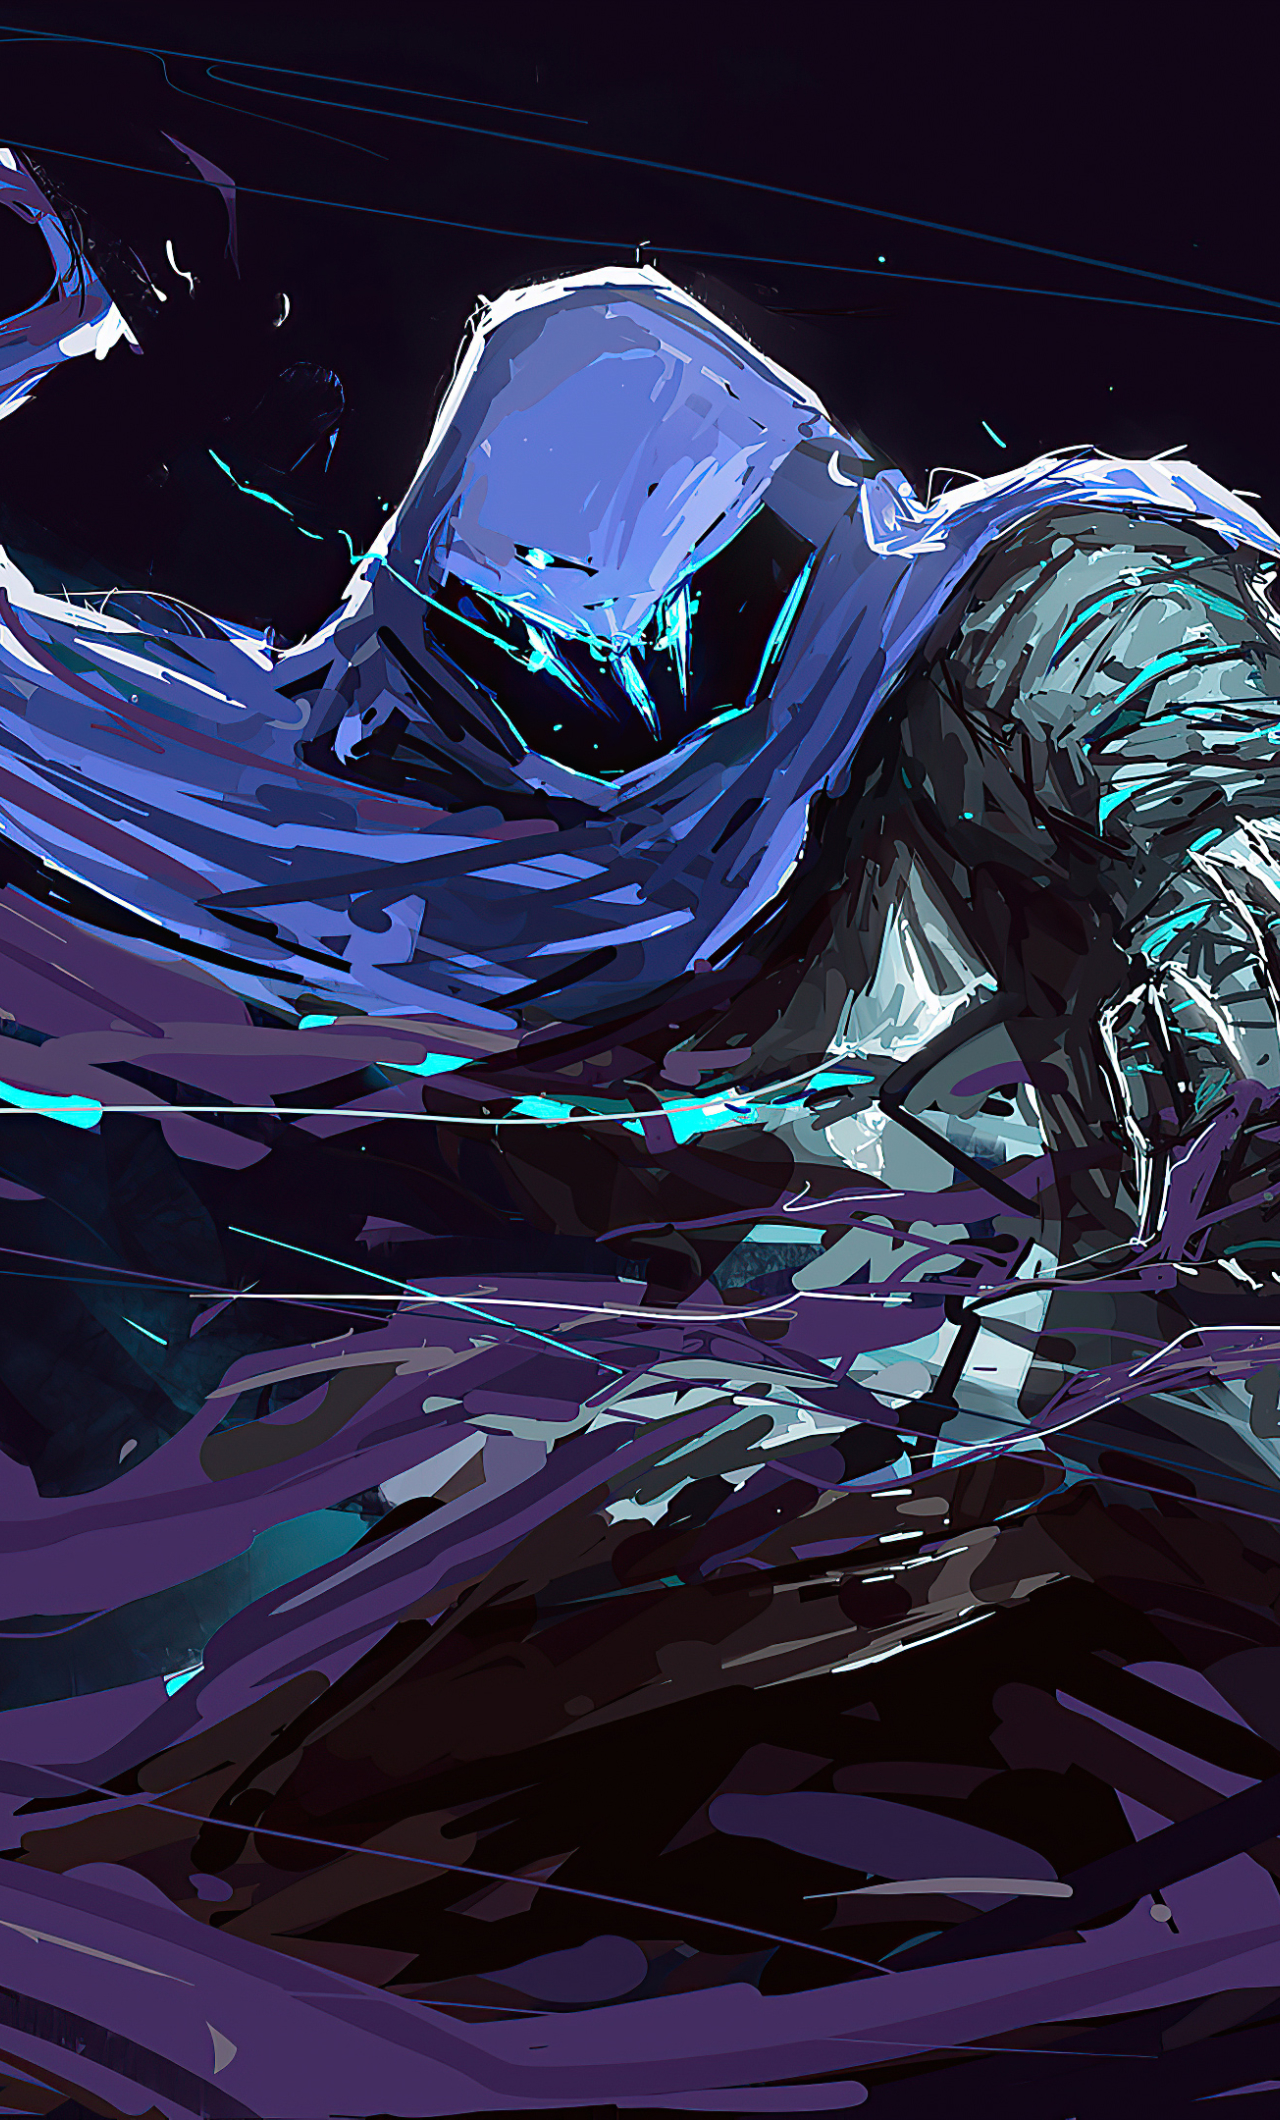 1280x2120 Omen New Cool Valorant Illustration iPhone 6 plus Wallpaper, HD Games 4K Wallpapers ...